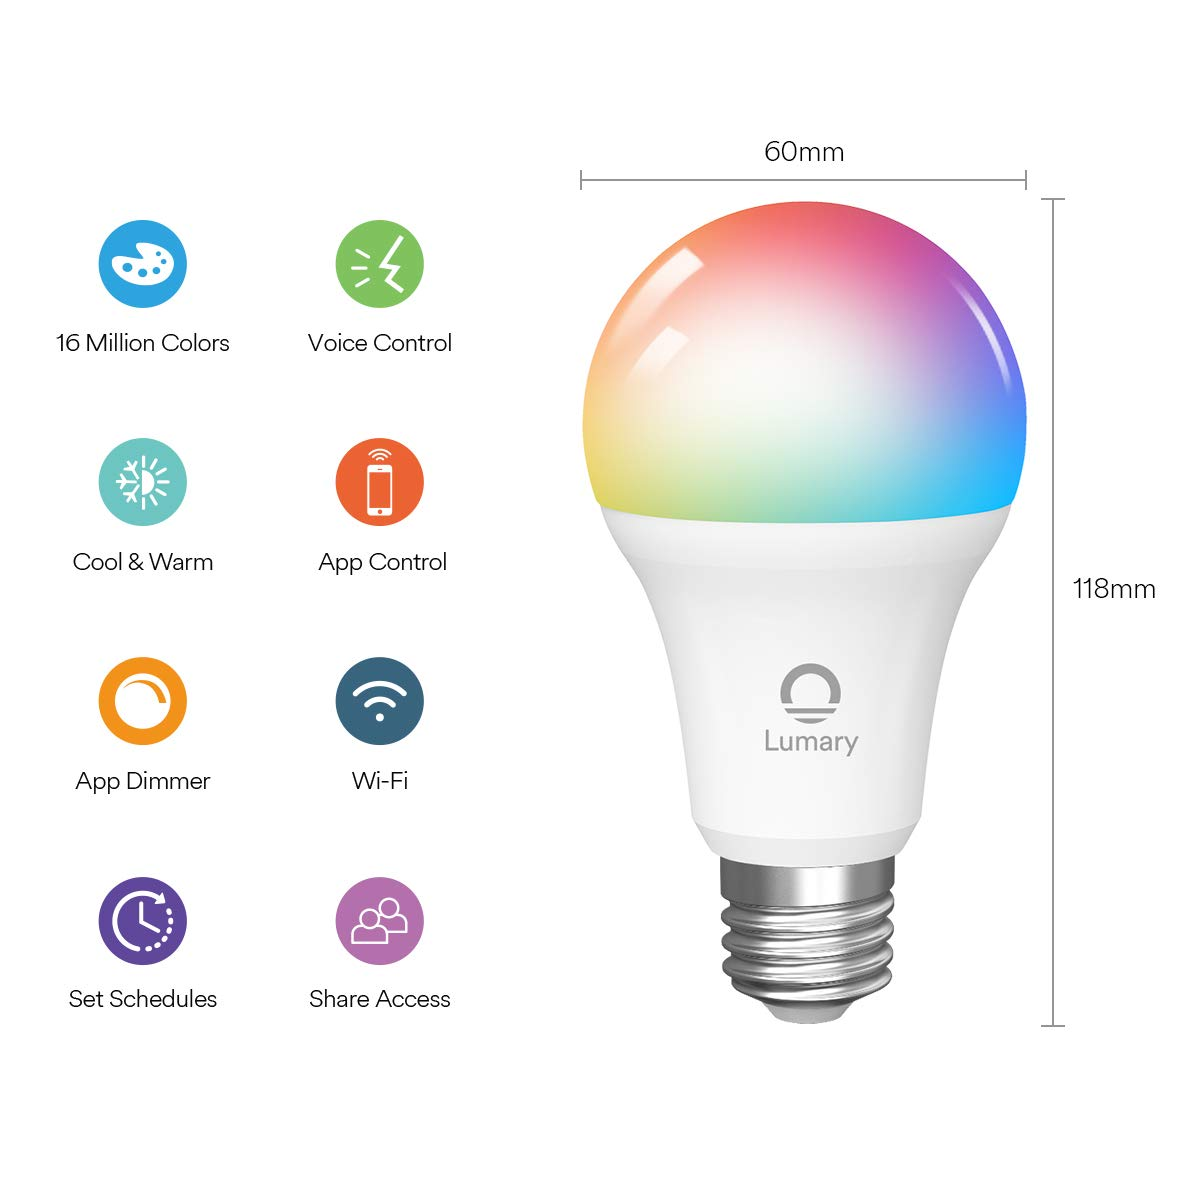 WiFi Smart Bulb Alexa, Lumary E27 9W Smart Light Bulb Compatible with Alexa, Google Home, Colour Dimmable RGBW 2700K-6000K Smart LED Bulbs, 60W Equivalent 806LM Remote Controlled No Hub Required